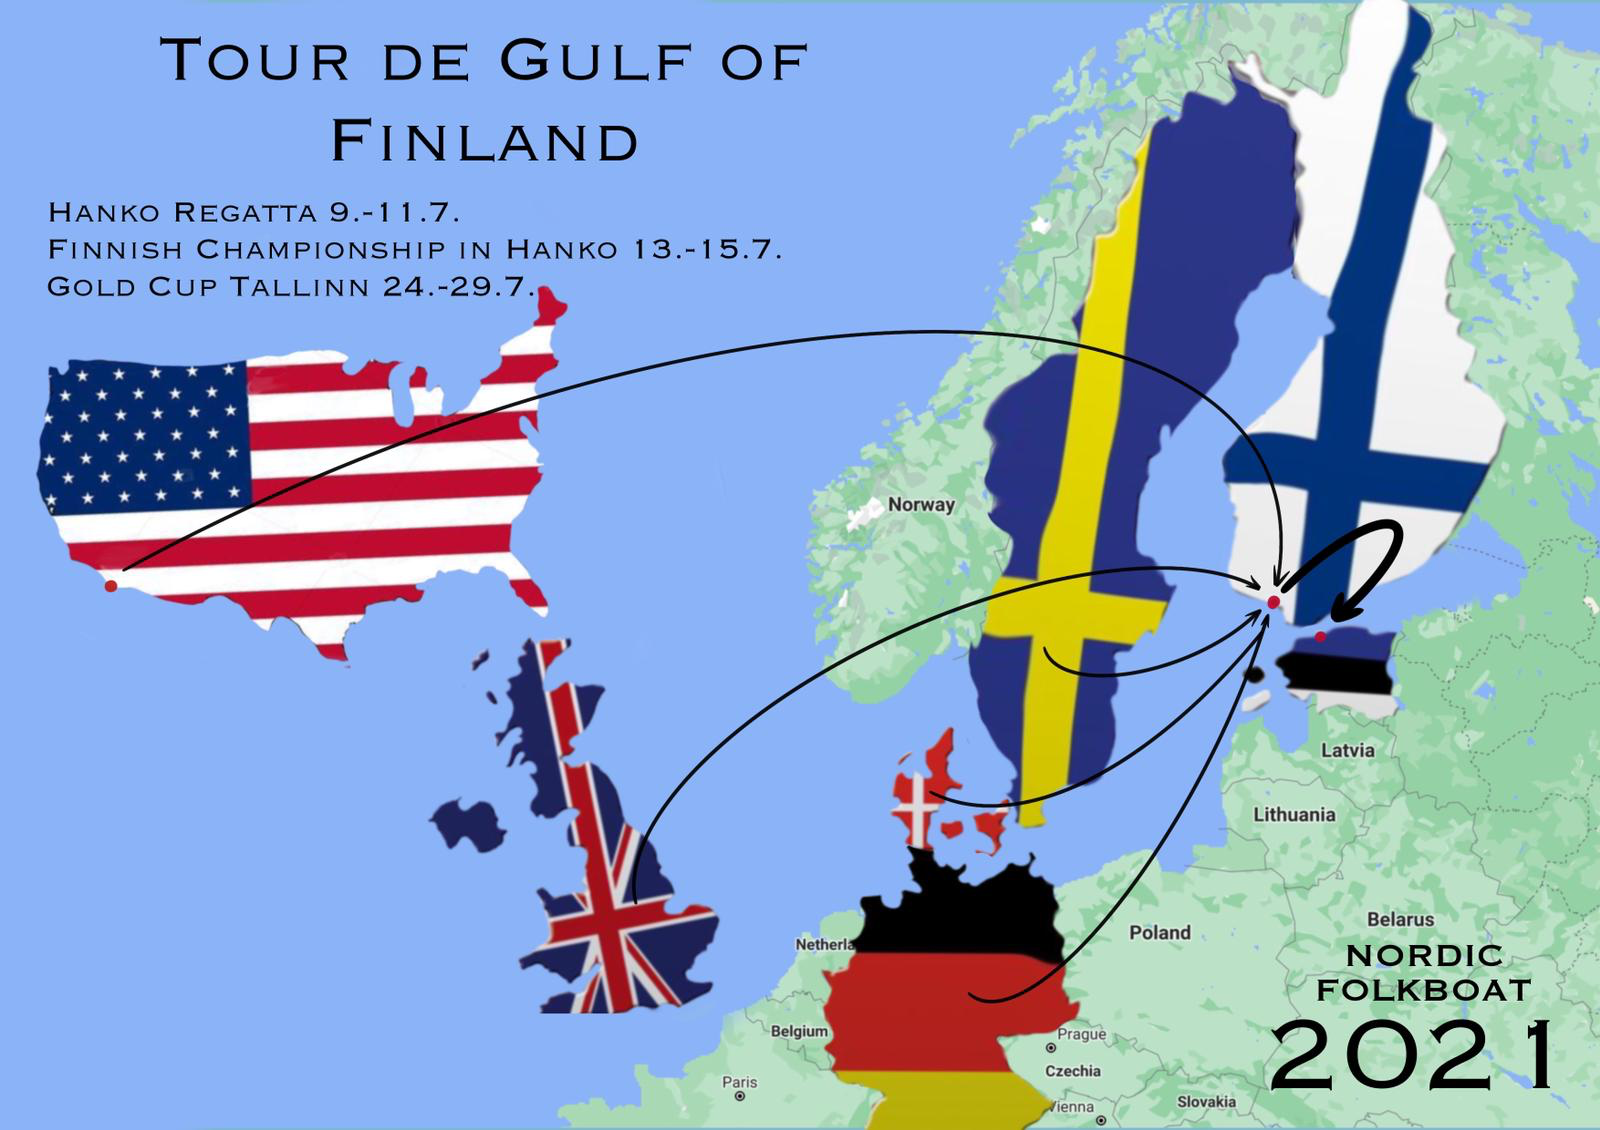 2021_Tour_de_Gulf_of_Finland_Folkboat.png